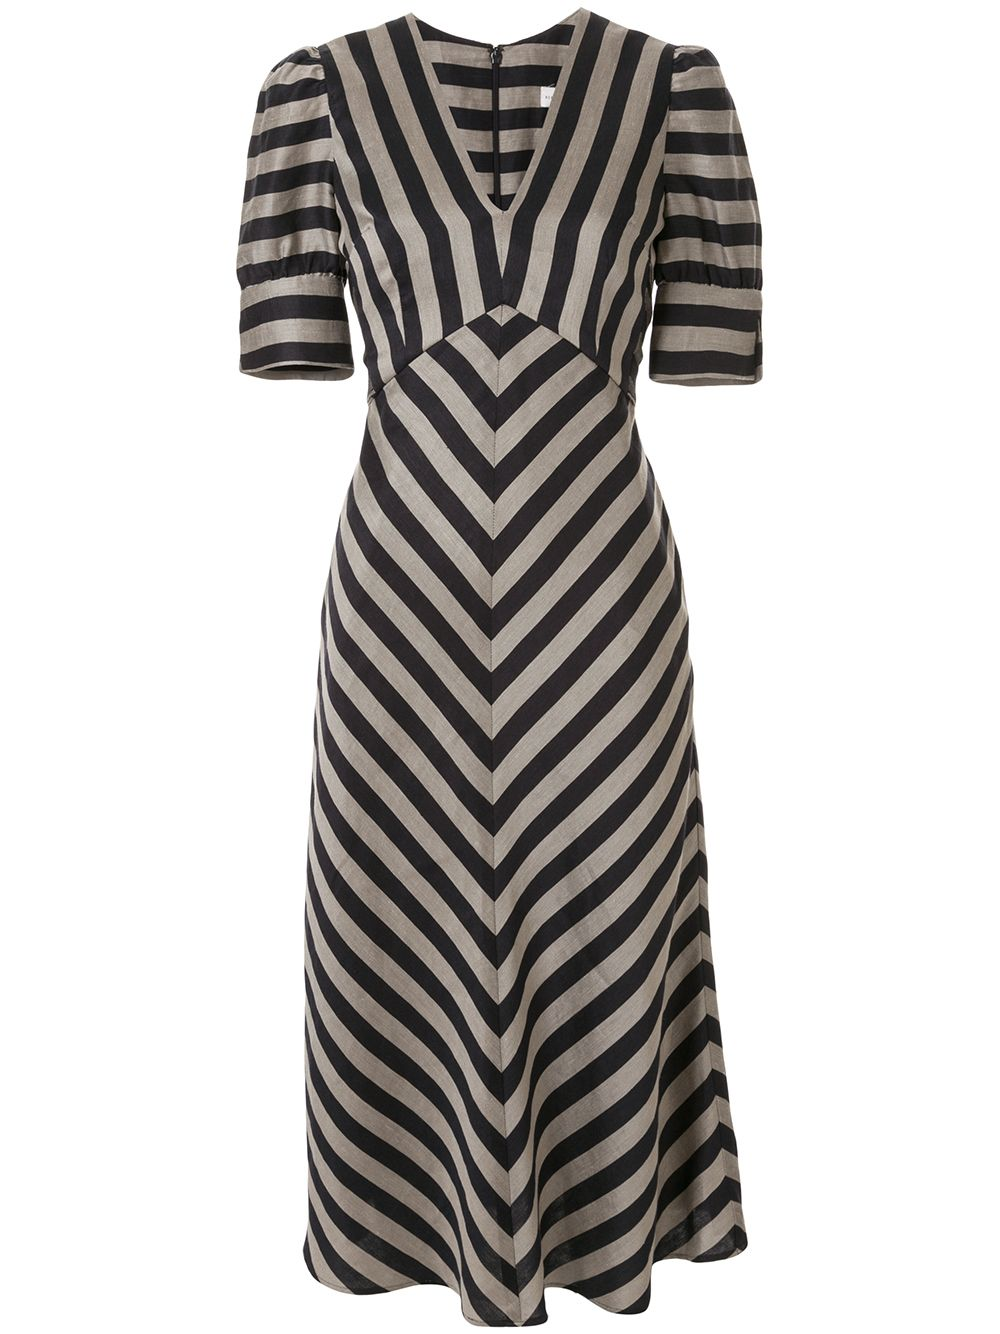 Nautique Midi Dress